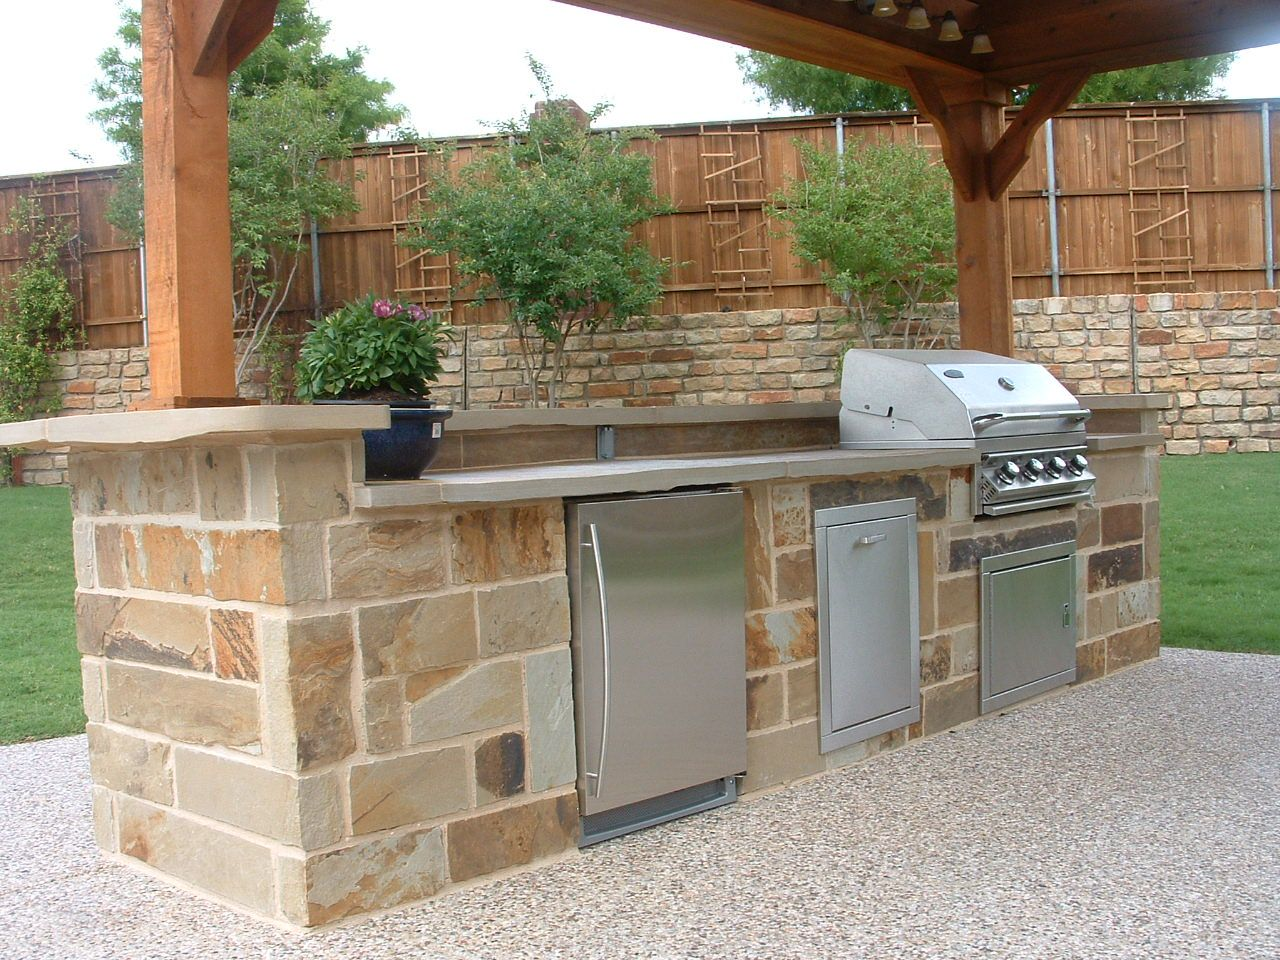 Outdoor Kitchen Area With Grilling Station Fort Worth Texas Pool Pinterest Grill